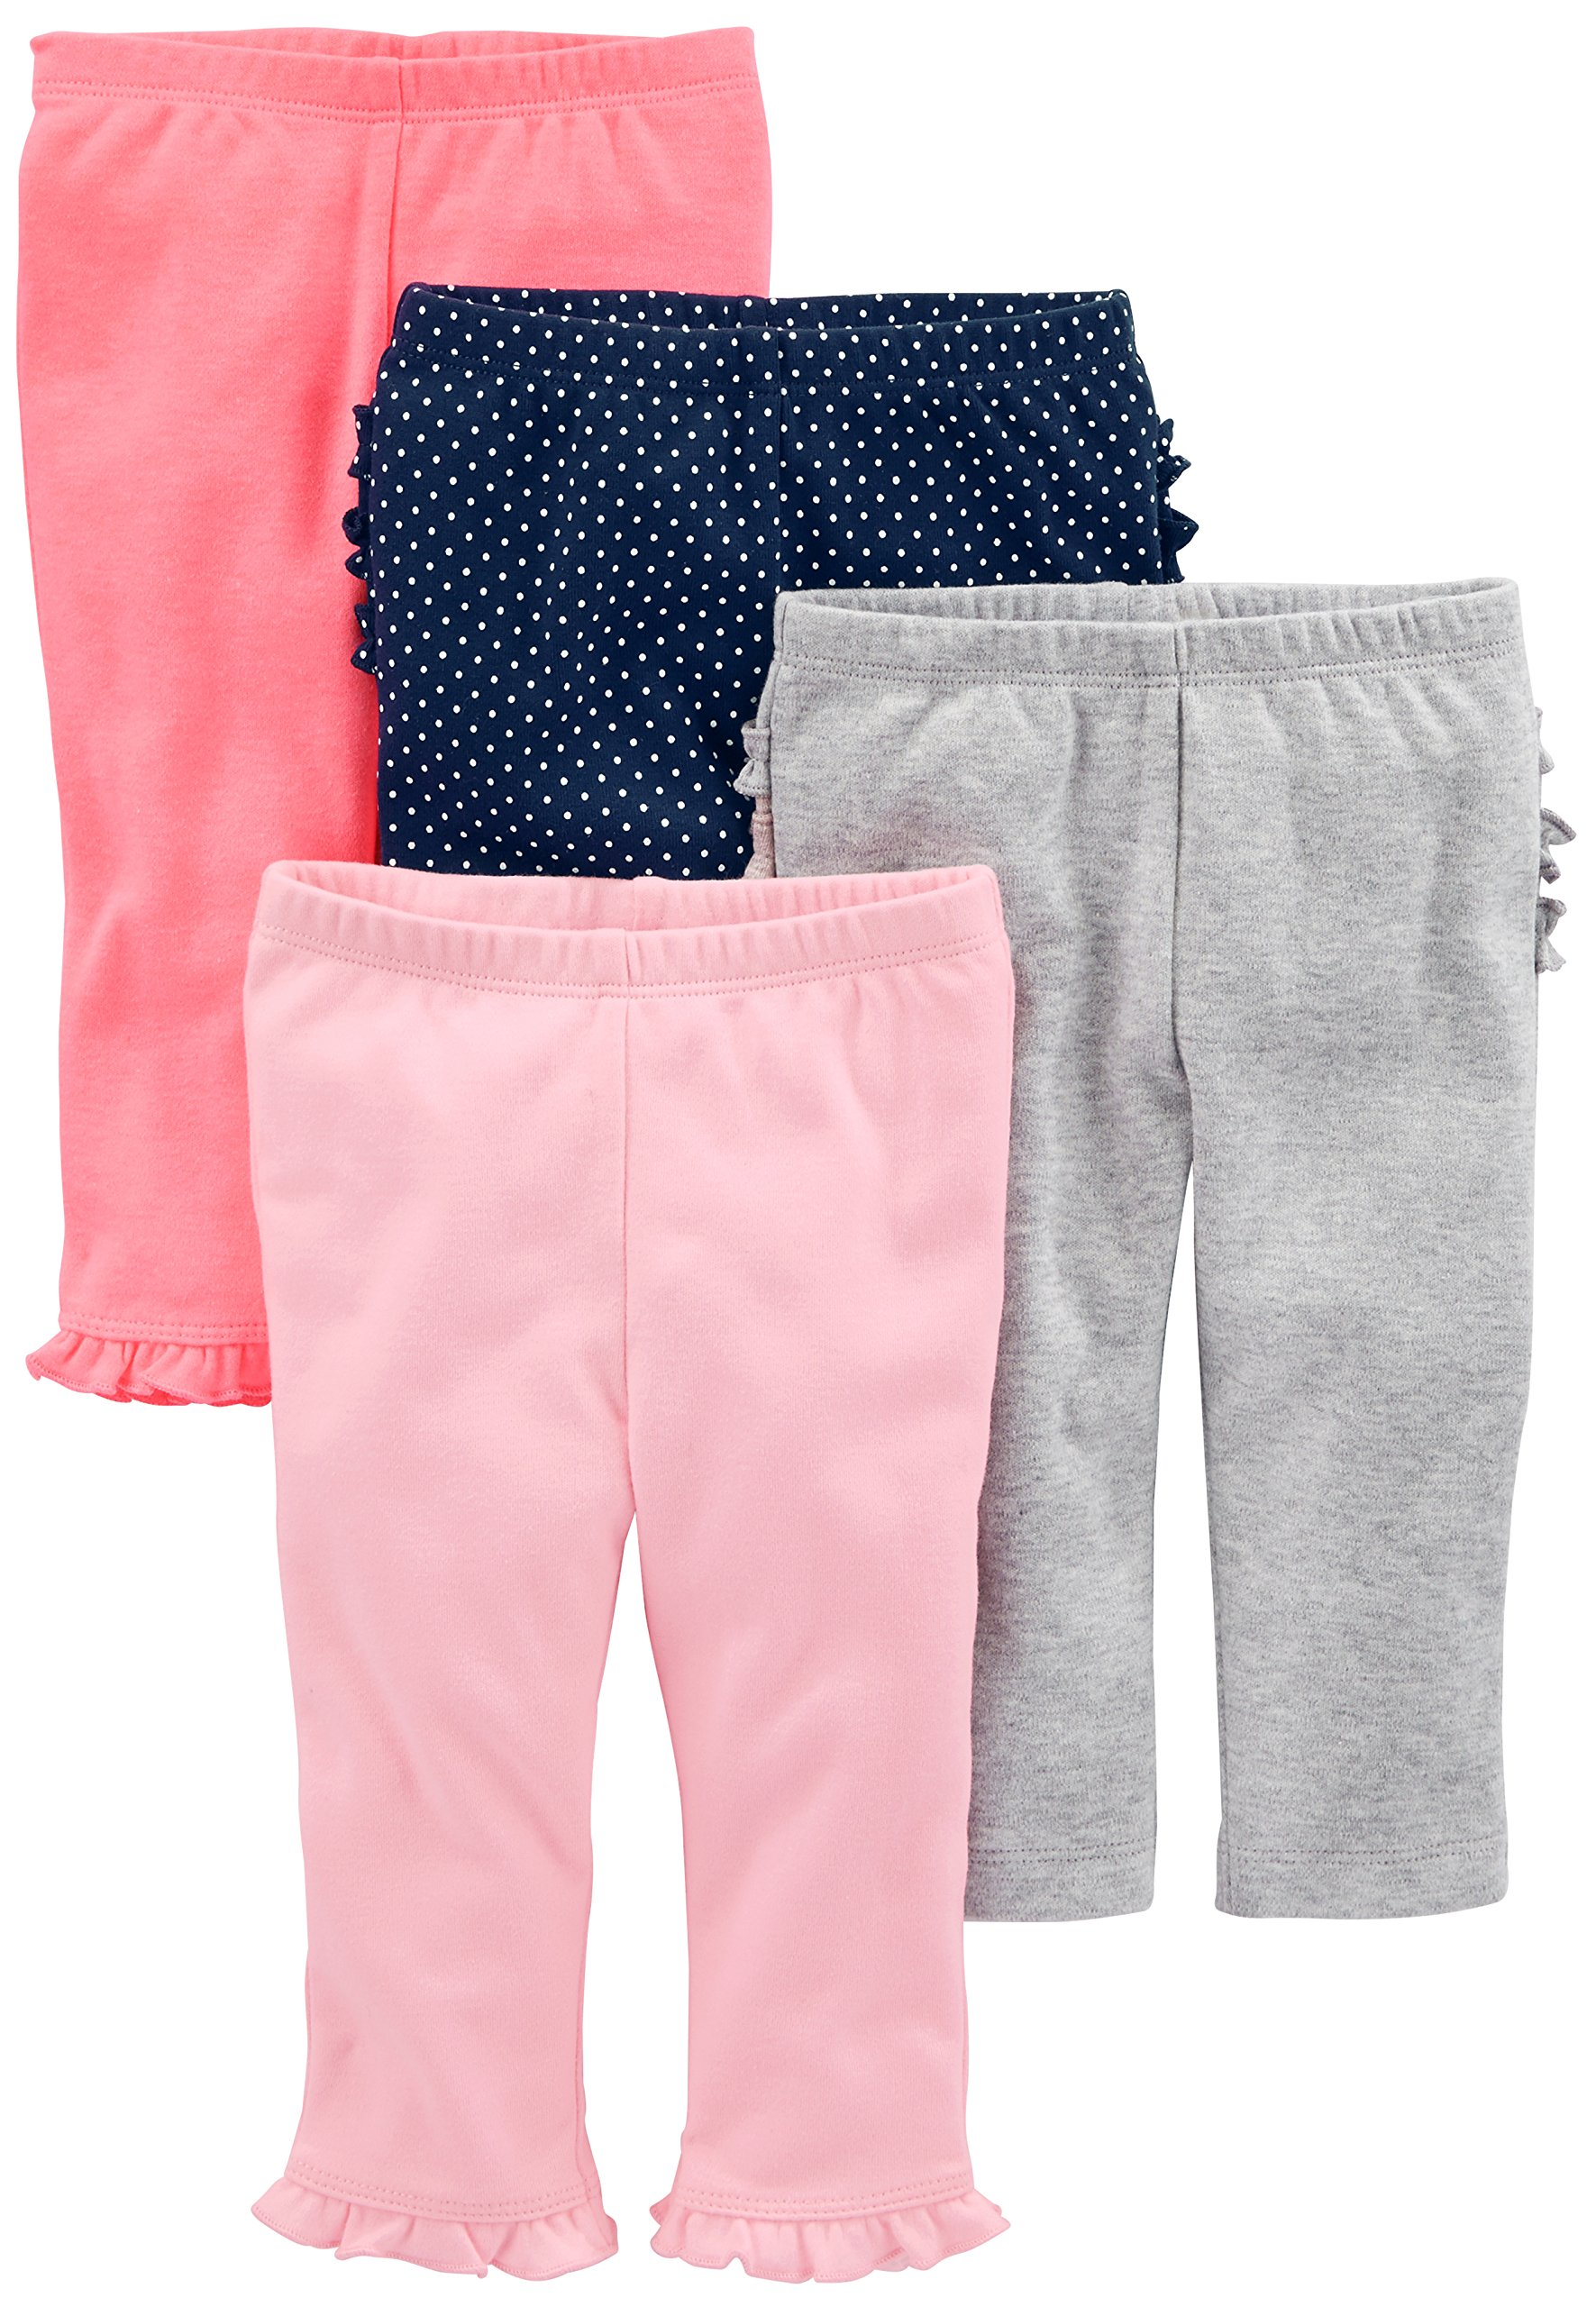 Simple Joys by Carter's Baby Girls' 4-Pack Pant, Pink/Gray/Navy Ruffle, Preemie